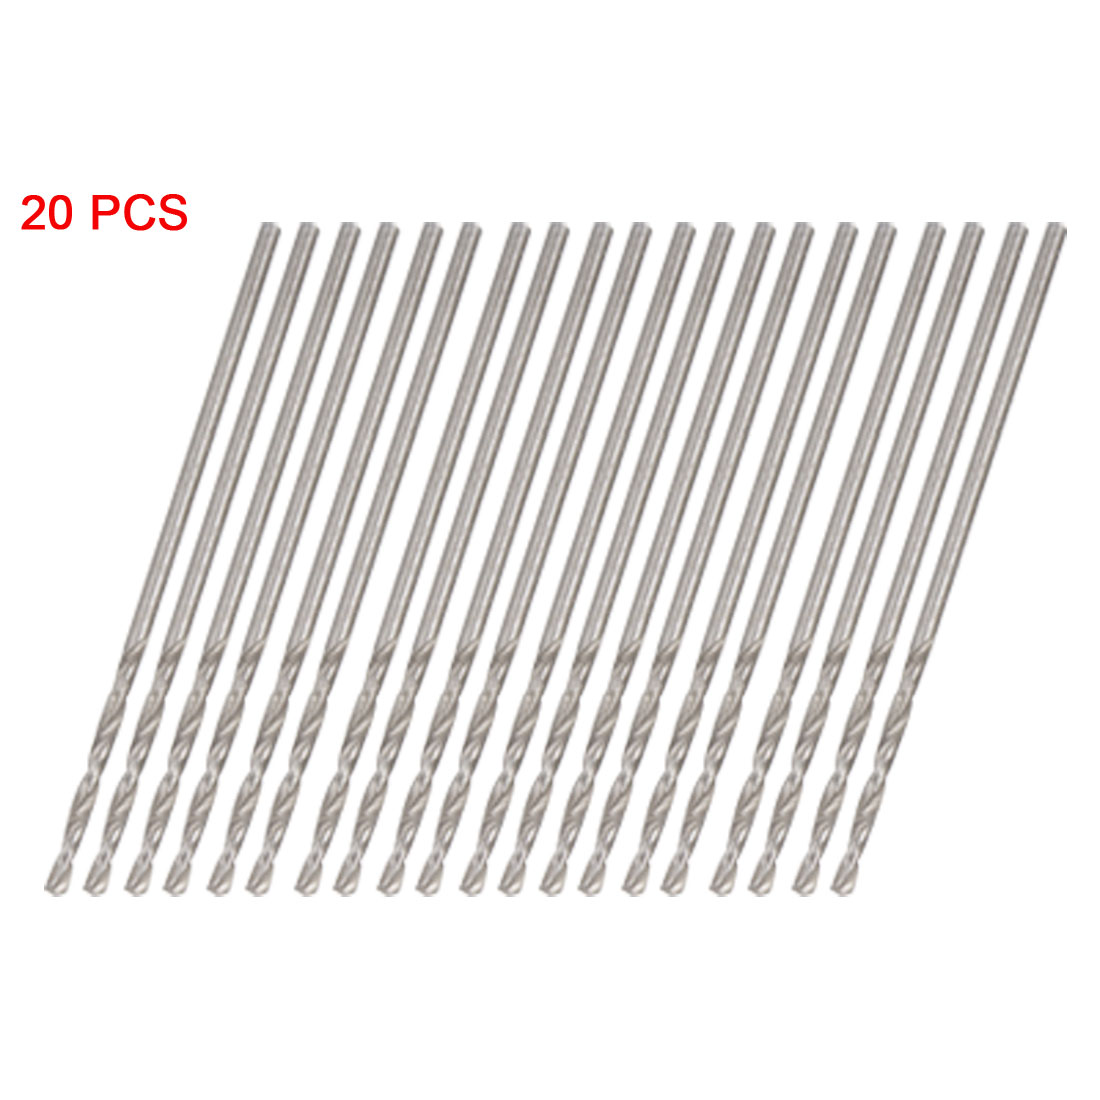 Electrical Replacement 0.7mm Twist Drill Bit 20 PCS